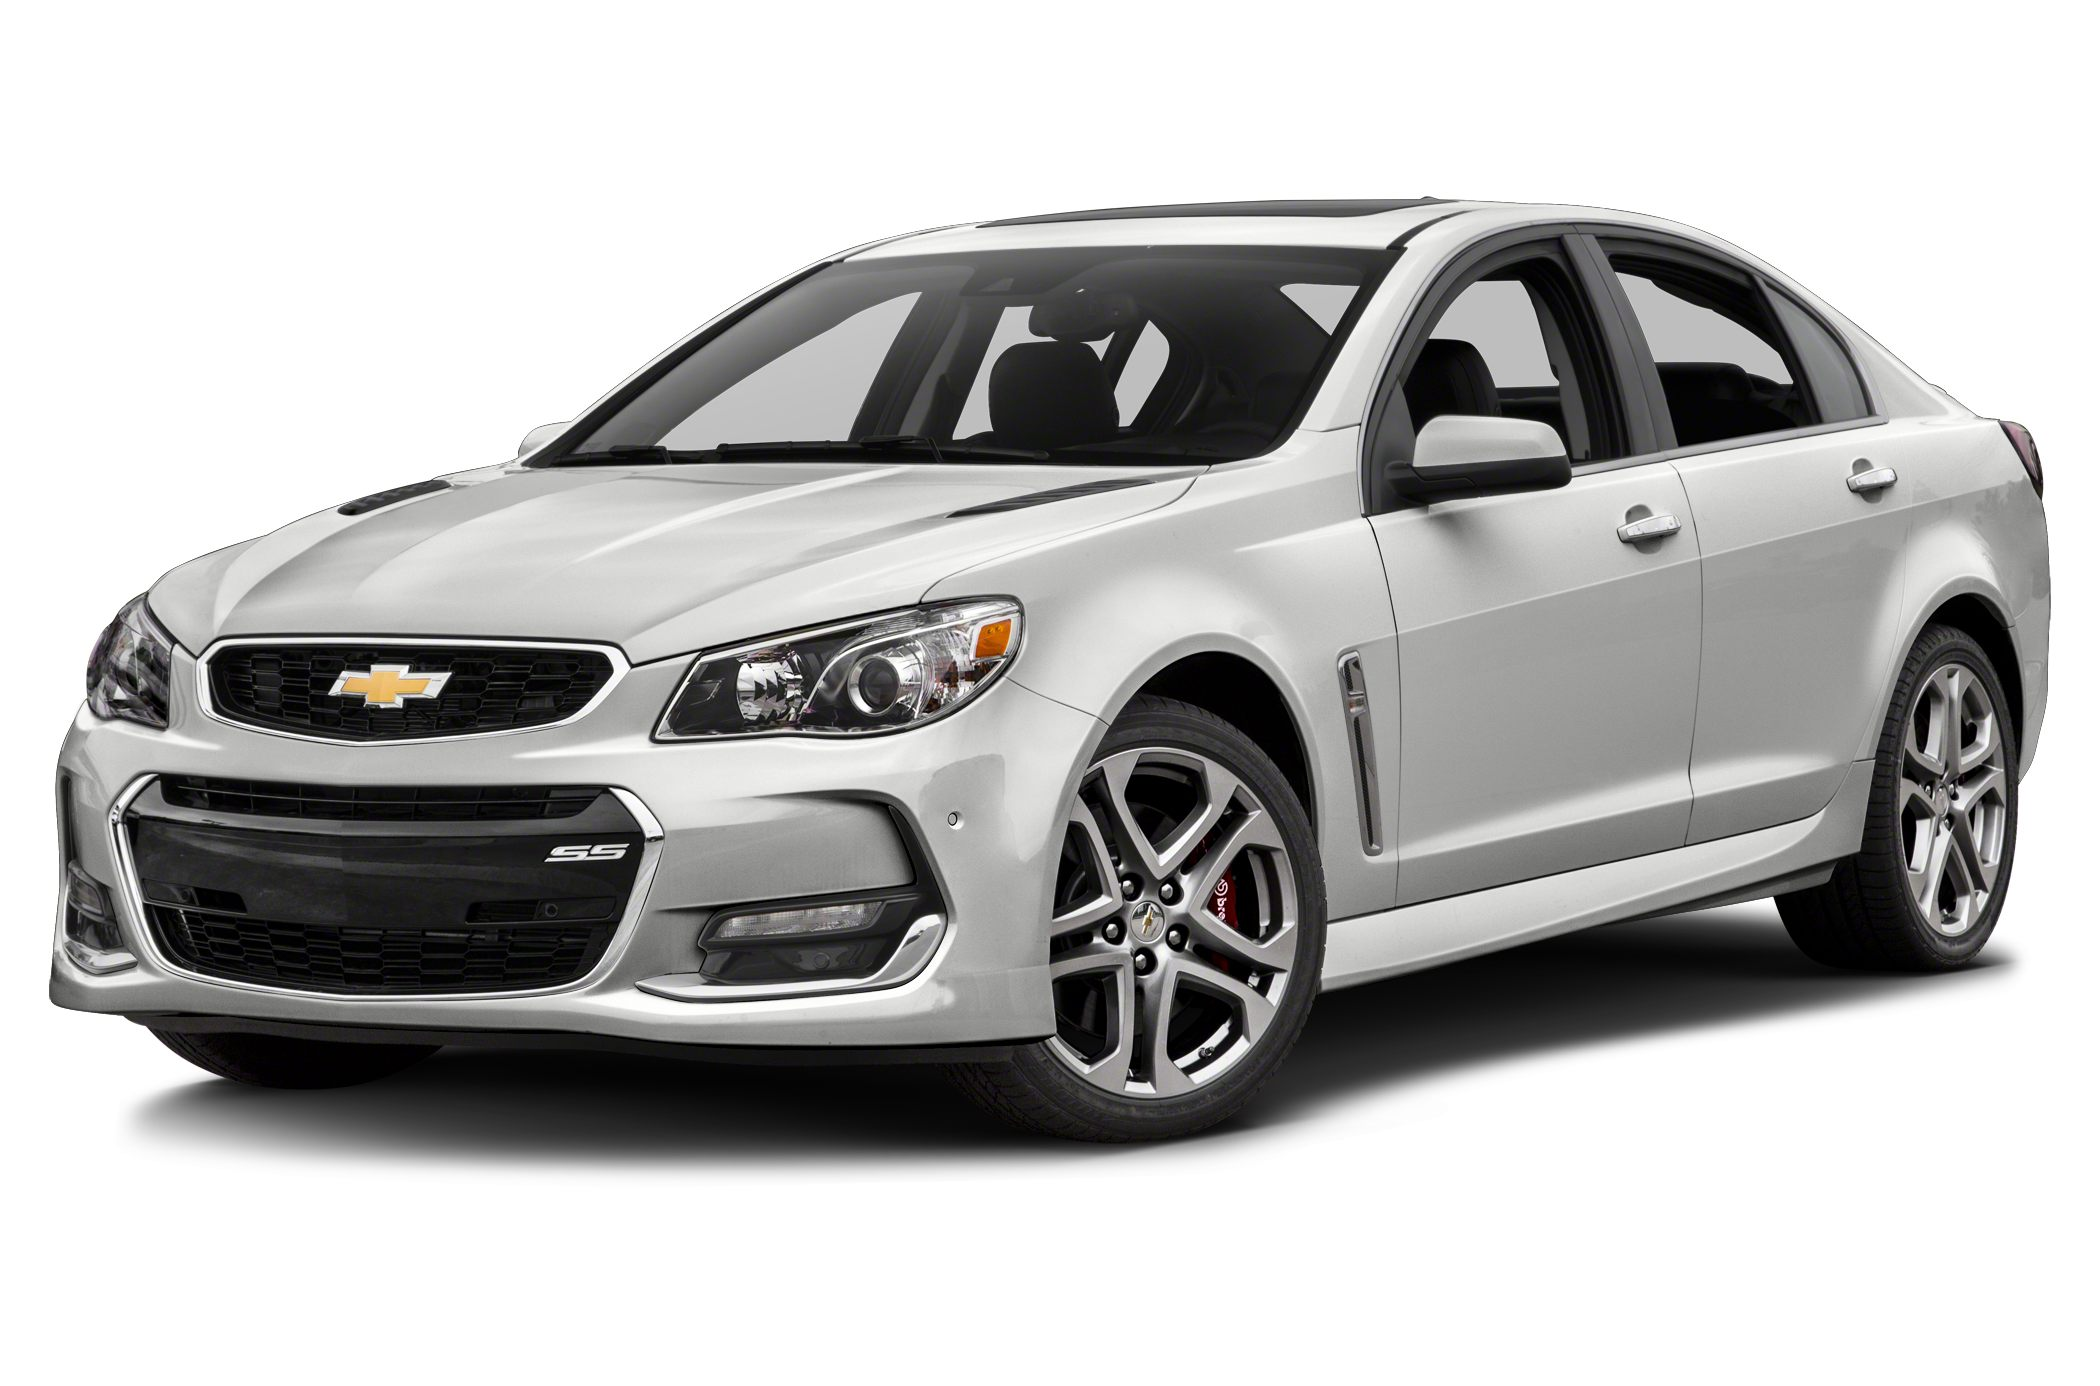 2017 SS 4-Door Sports Sedan | Chevrolet